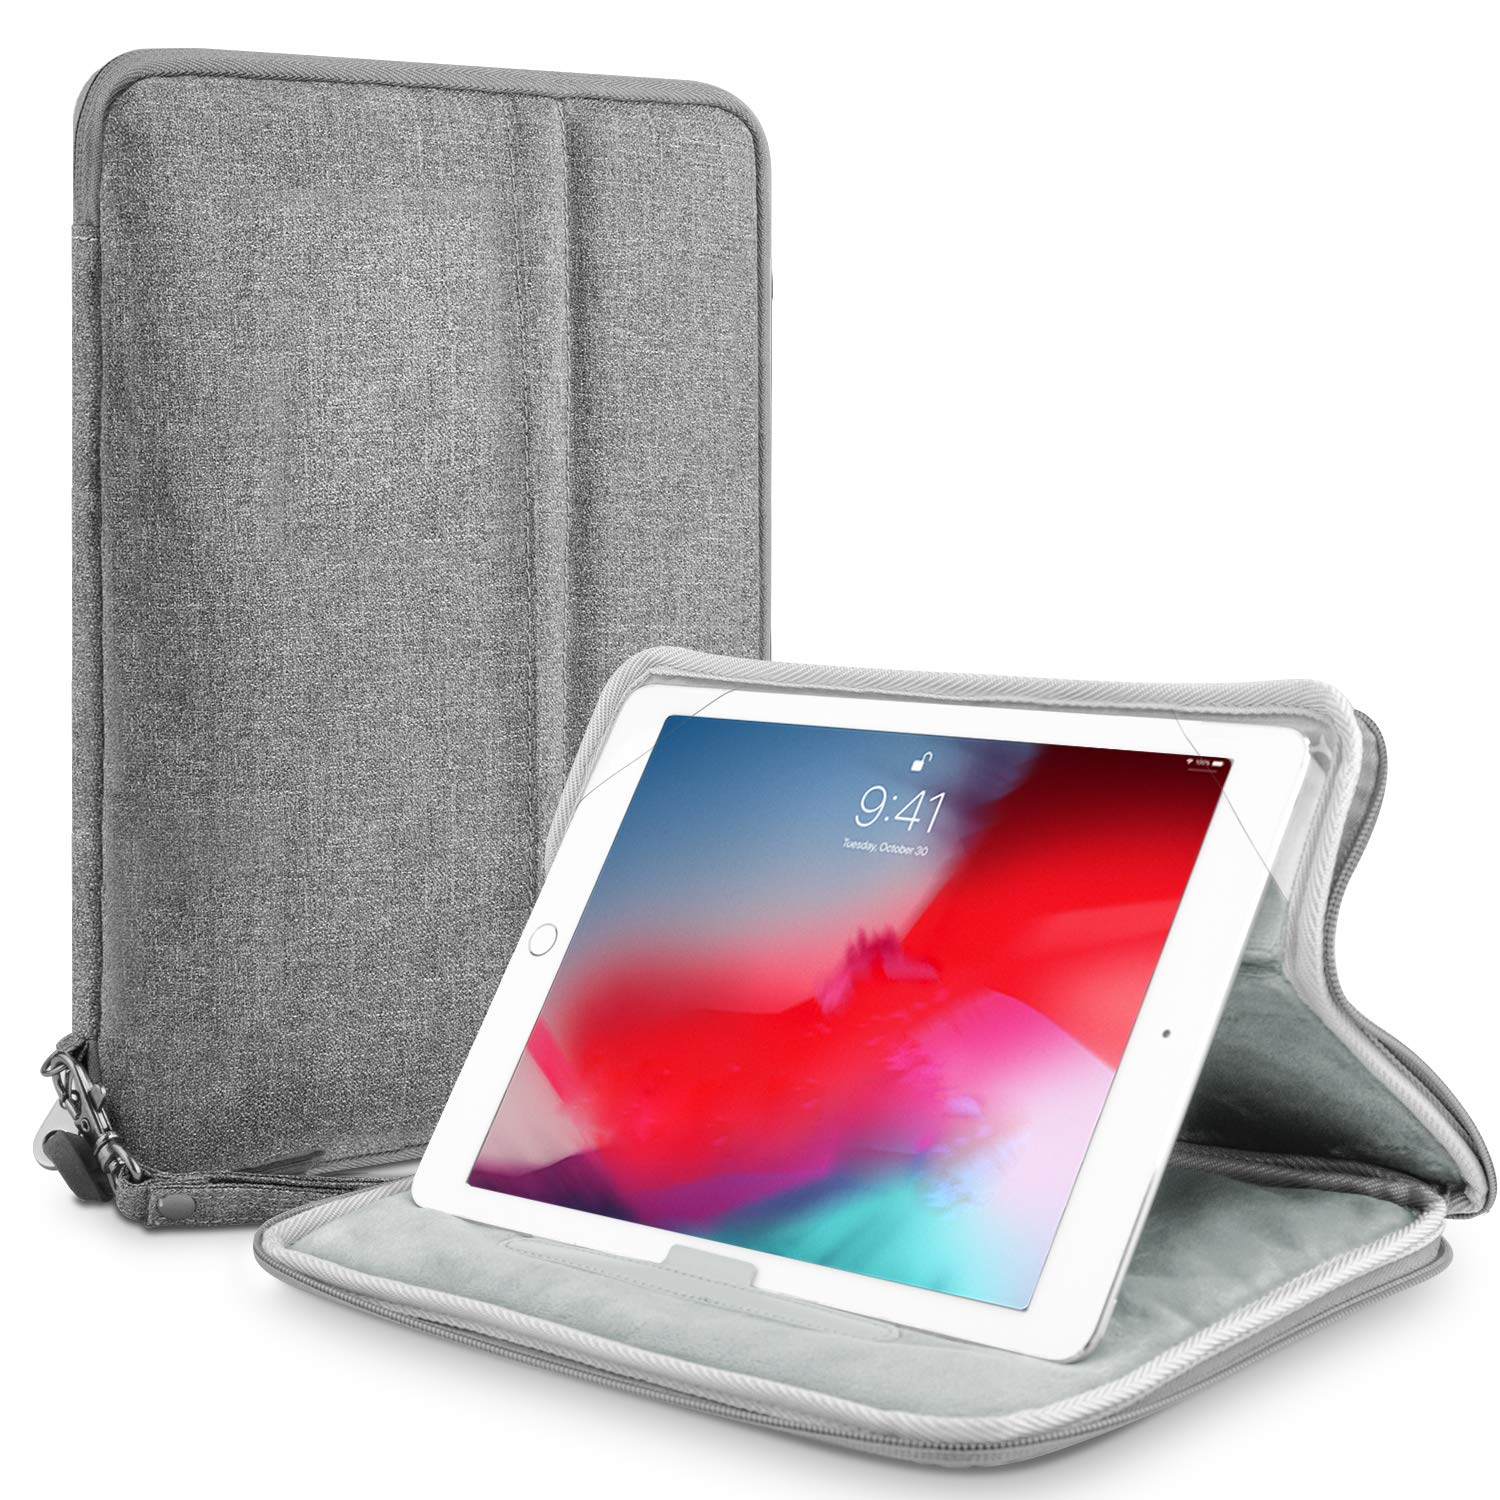 "7-11 Inch Tablet Sleeve Case, Yunerz iPad Tablet Sleeve 11 Inch Shockproof Water Resistant Full-Body Protective Bag for 11"" New iPad Pro 2018/ iPad air 1/2 /iPad Pro /7.9 iPad (Gray)"